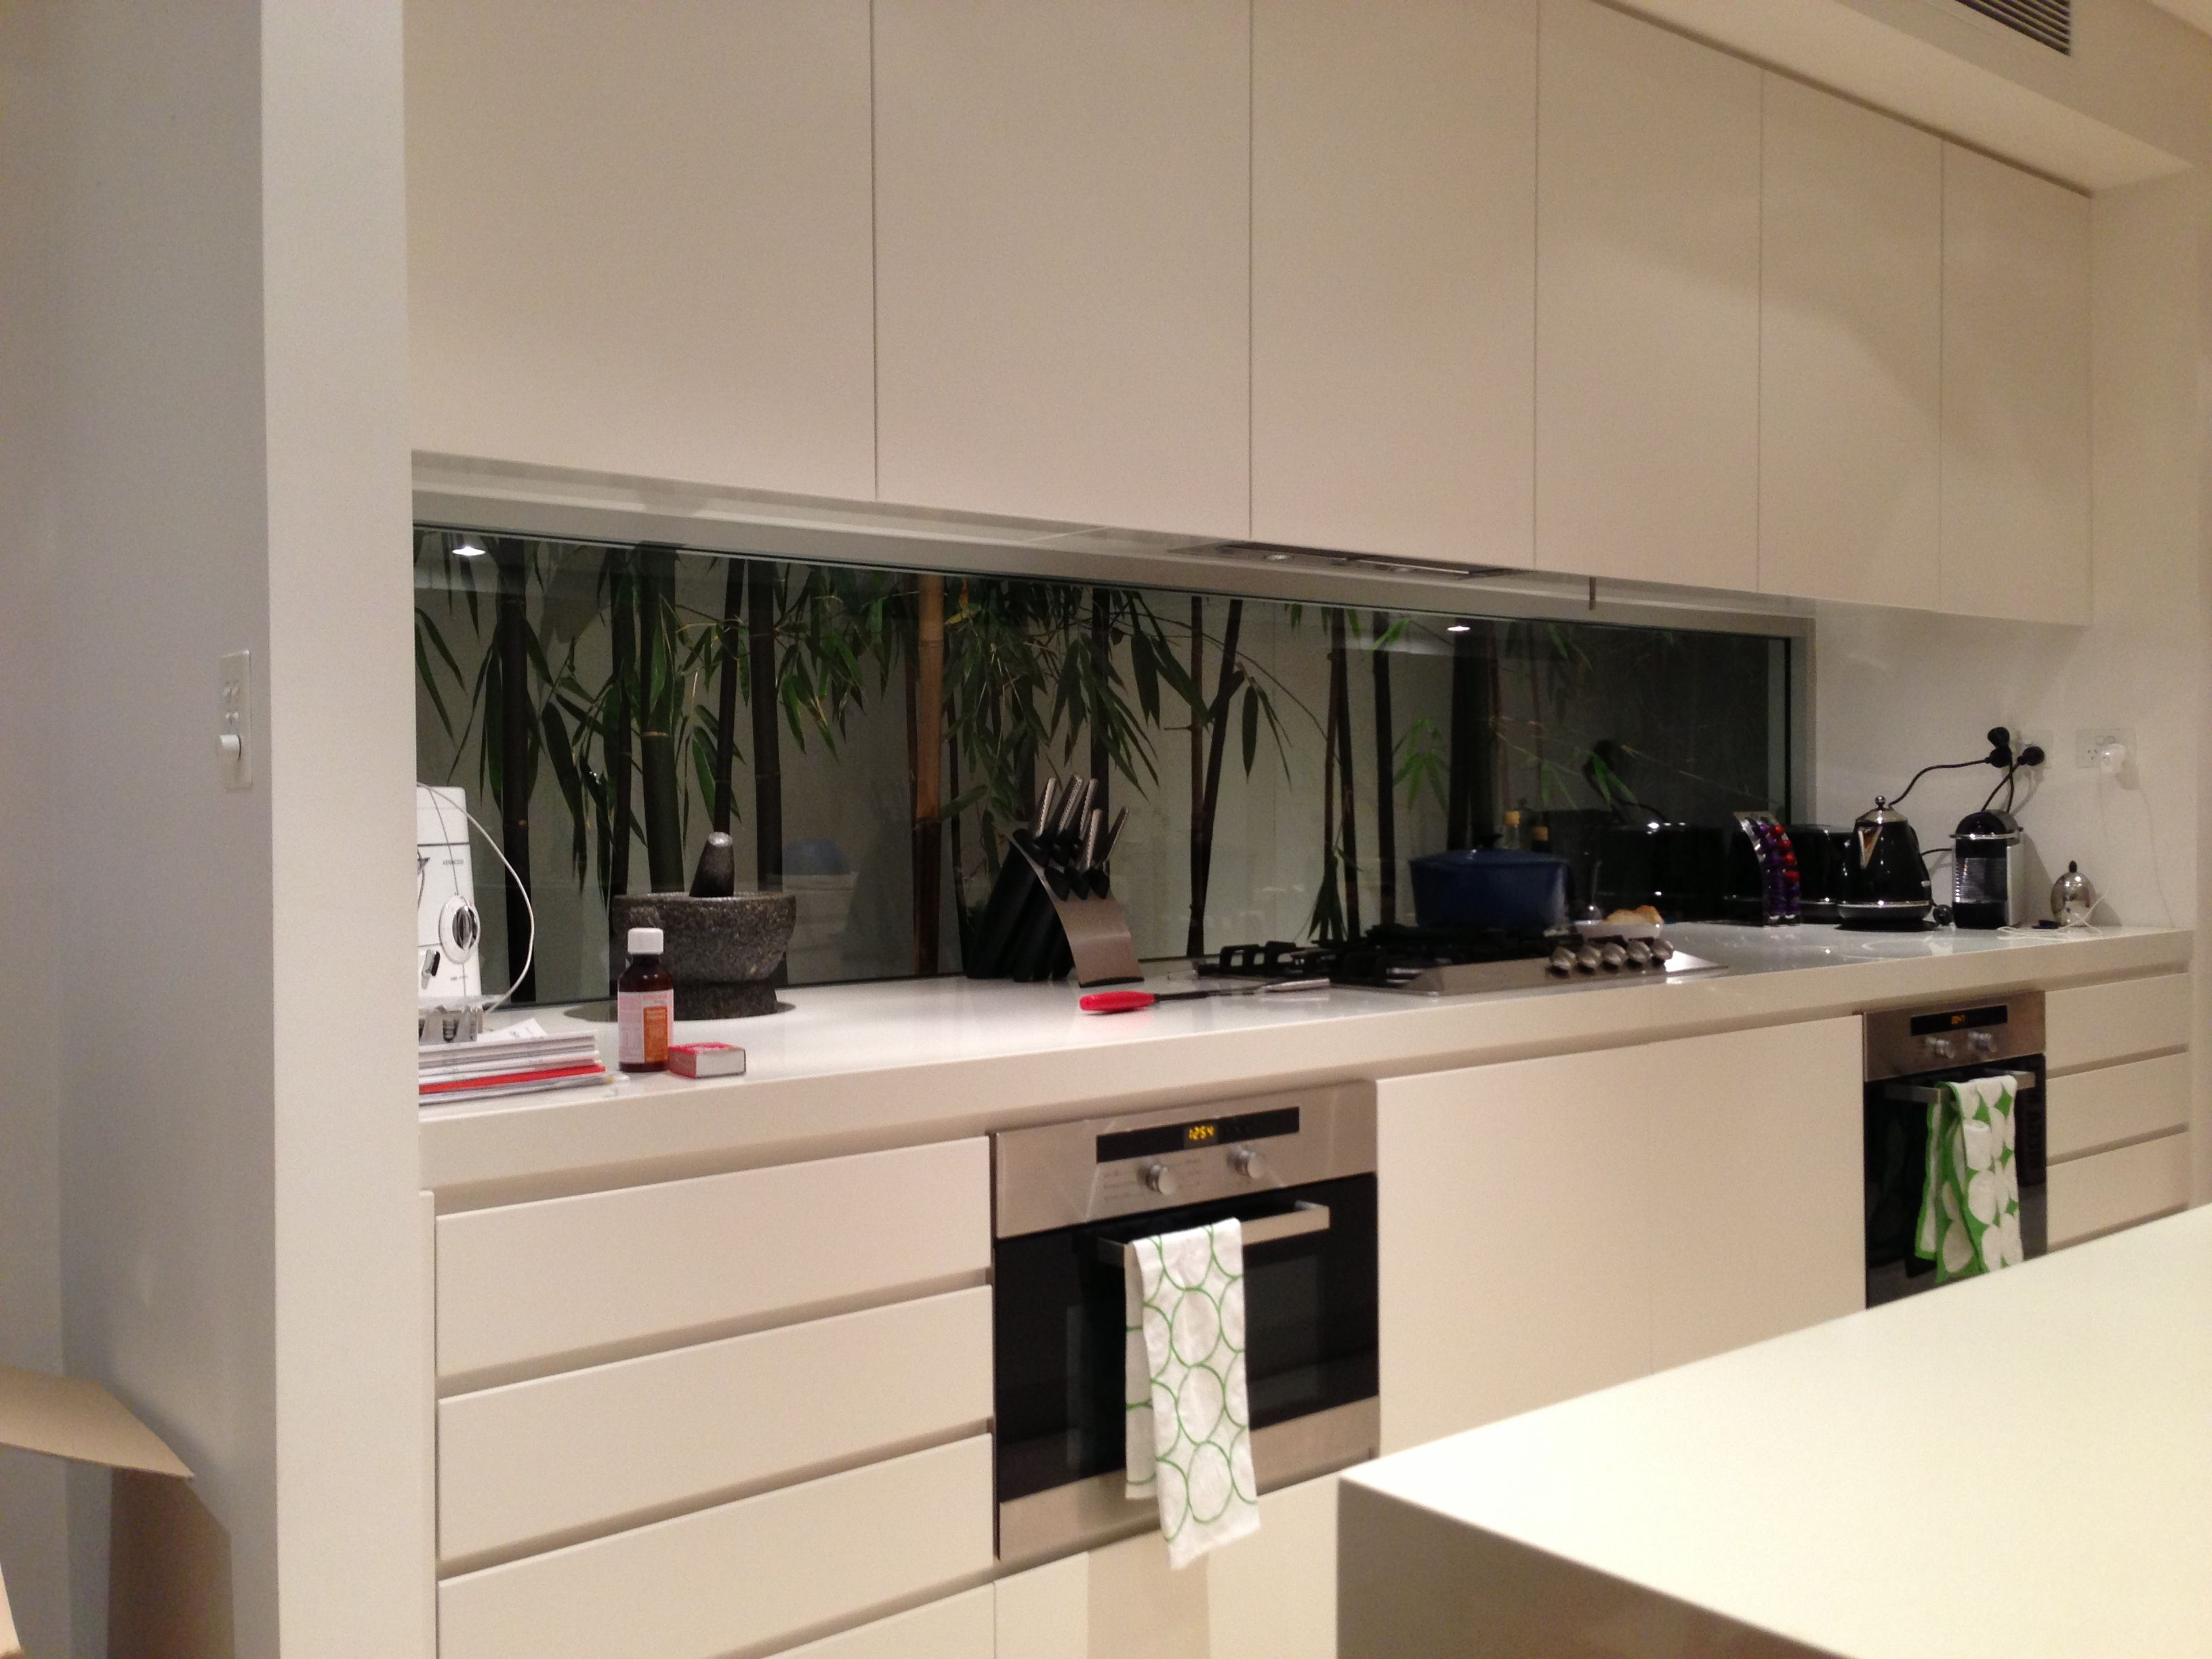 Bamboo Backsplash Kitchen Glass Splashback Behind Bamboo Kitchen